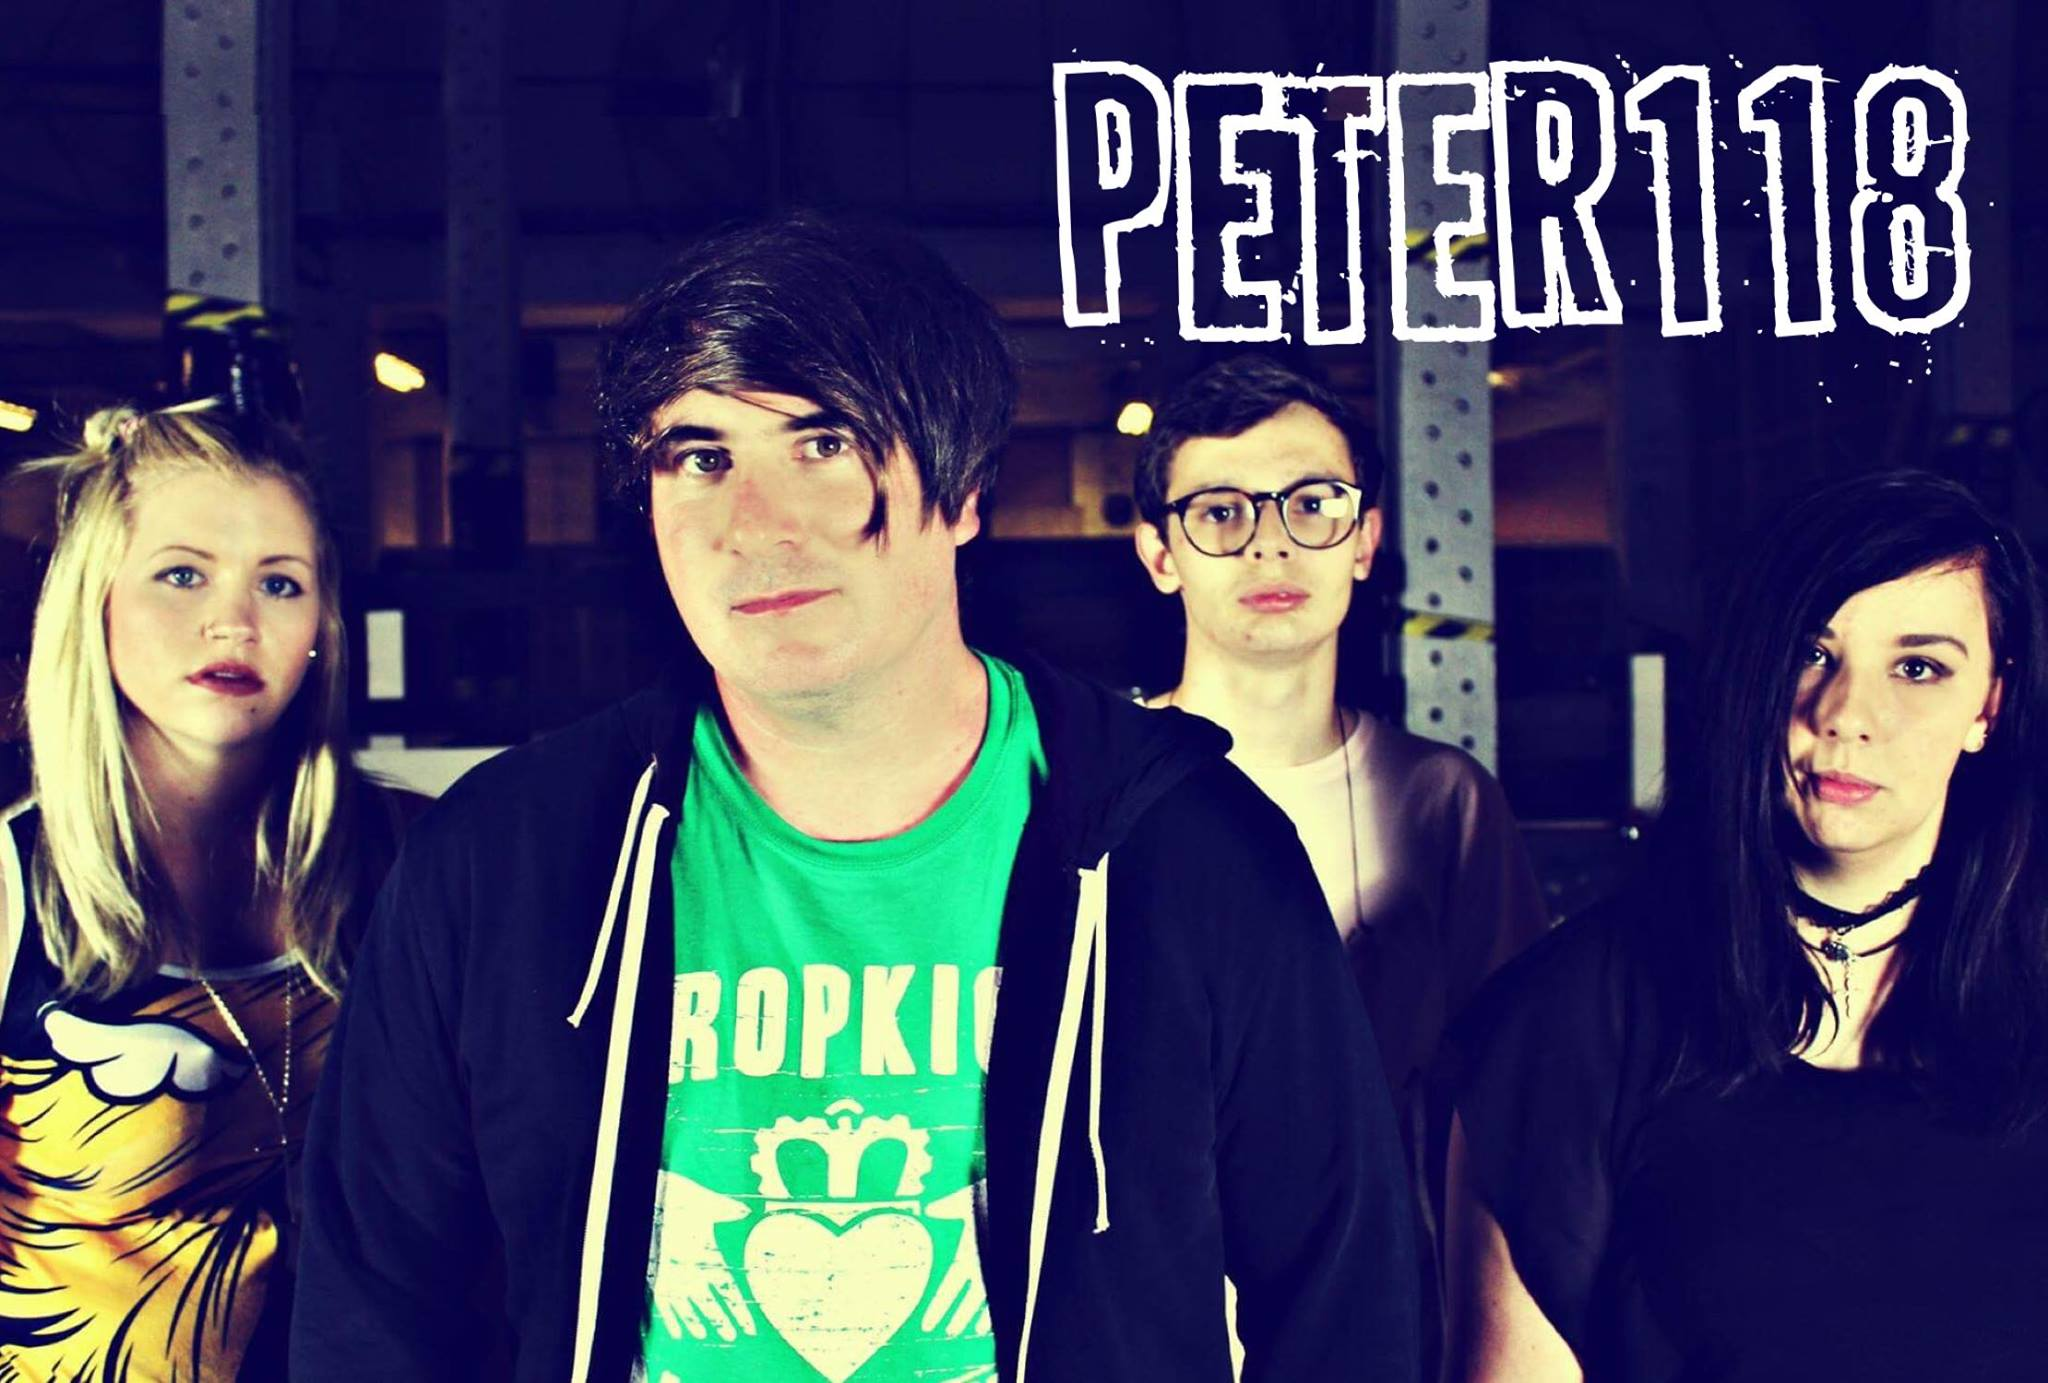 Peter118 Interview [March 2018]